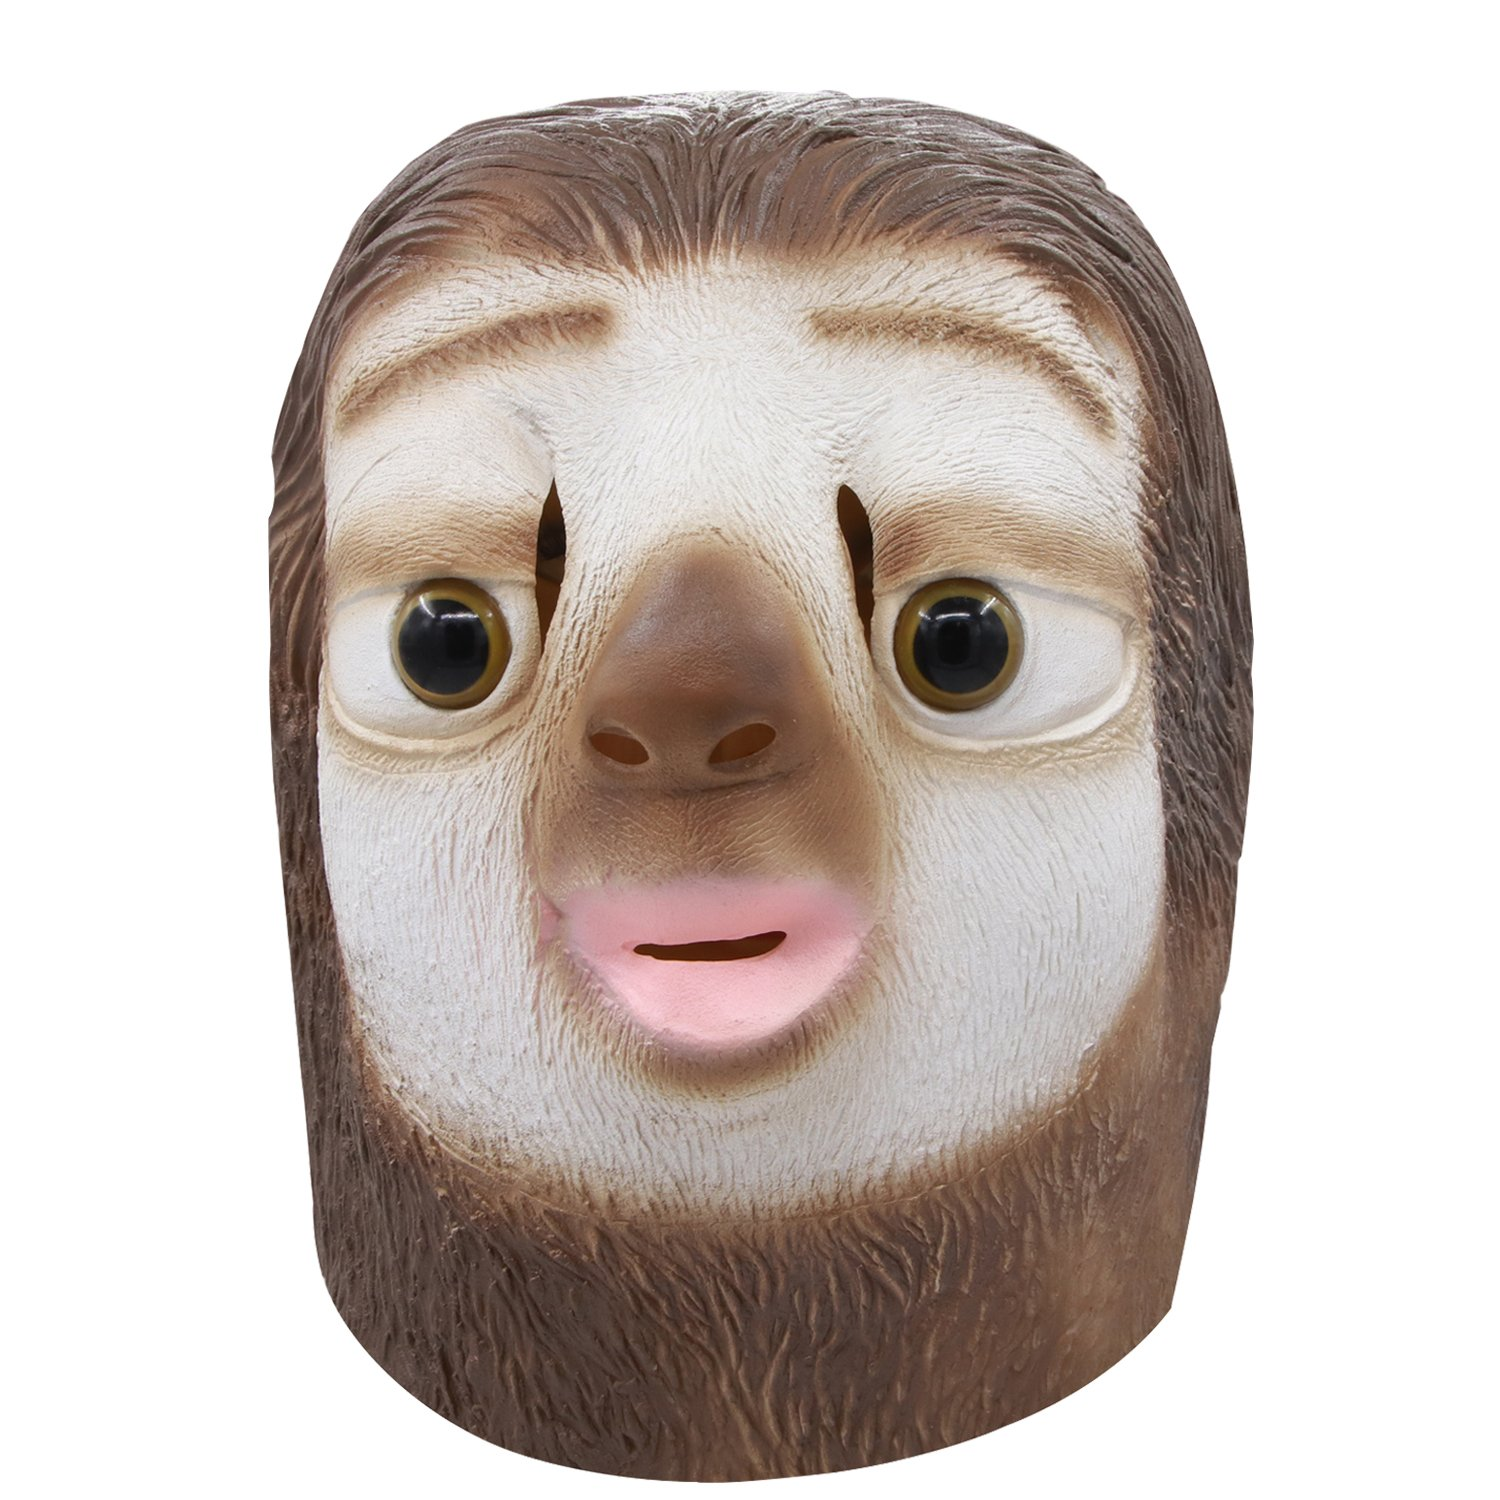 Waylike Novelty Sloth mask Halloween Costume Party Latex Animal Mask for Adult and Children